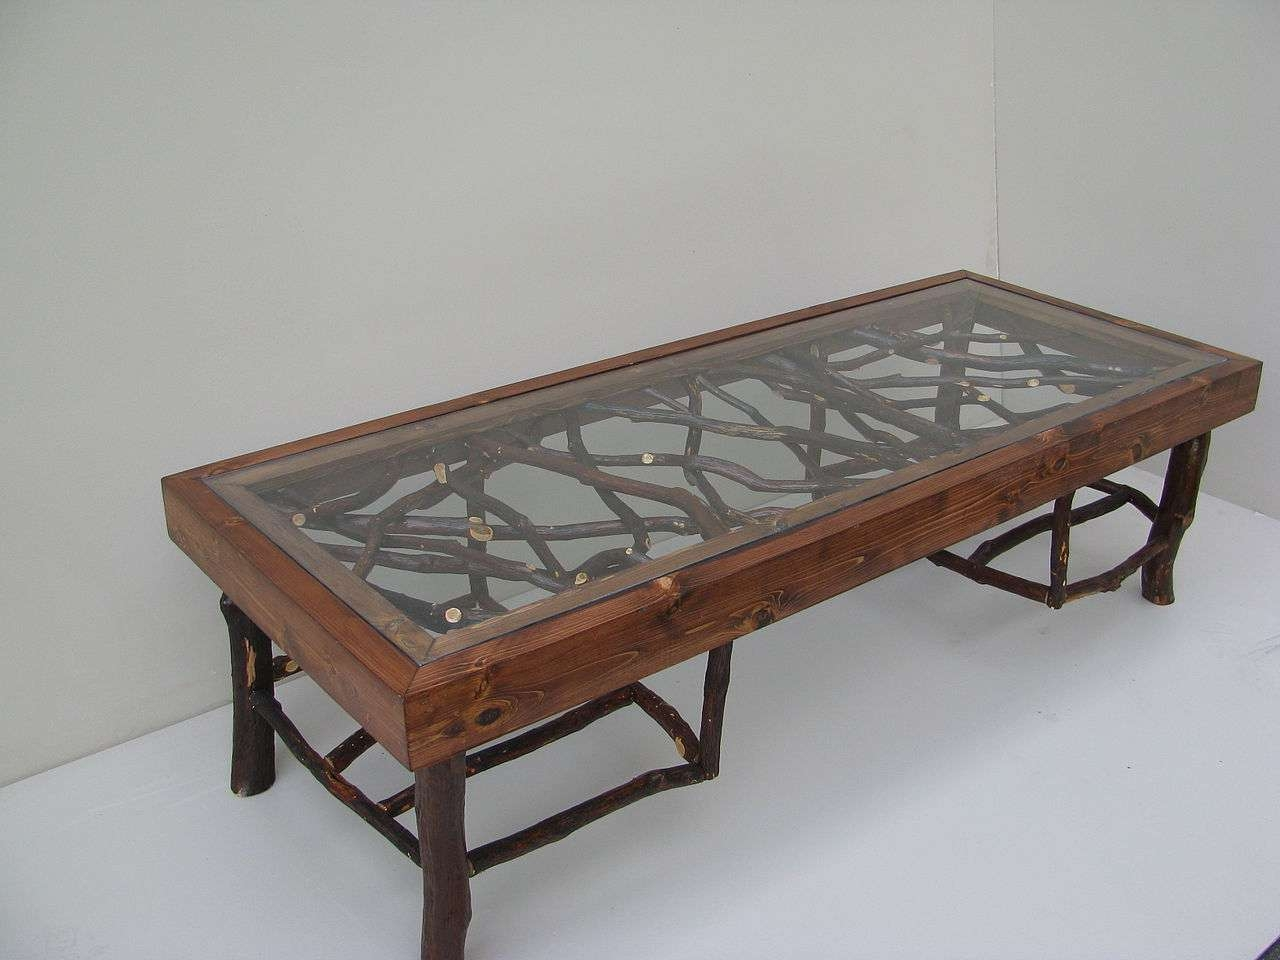 File:rustic Coffee Table – Wikimedia Commons For Most Recent Antique Rustic Coffee Tables (View 10 of 20)